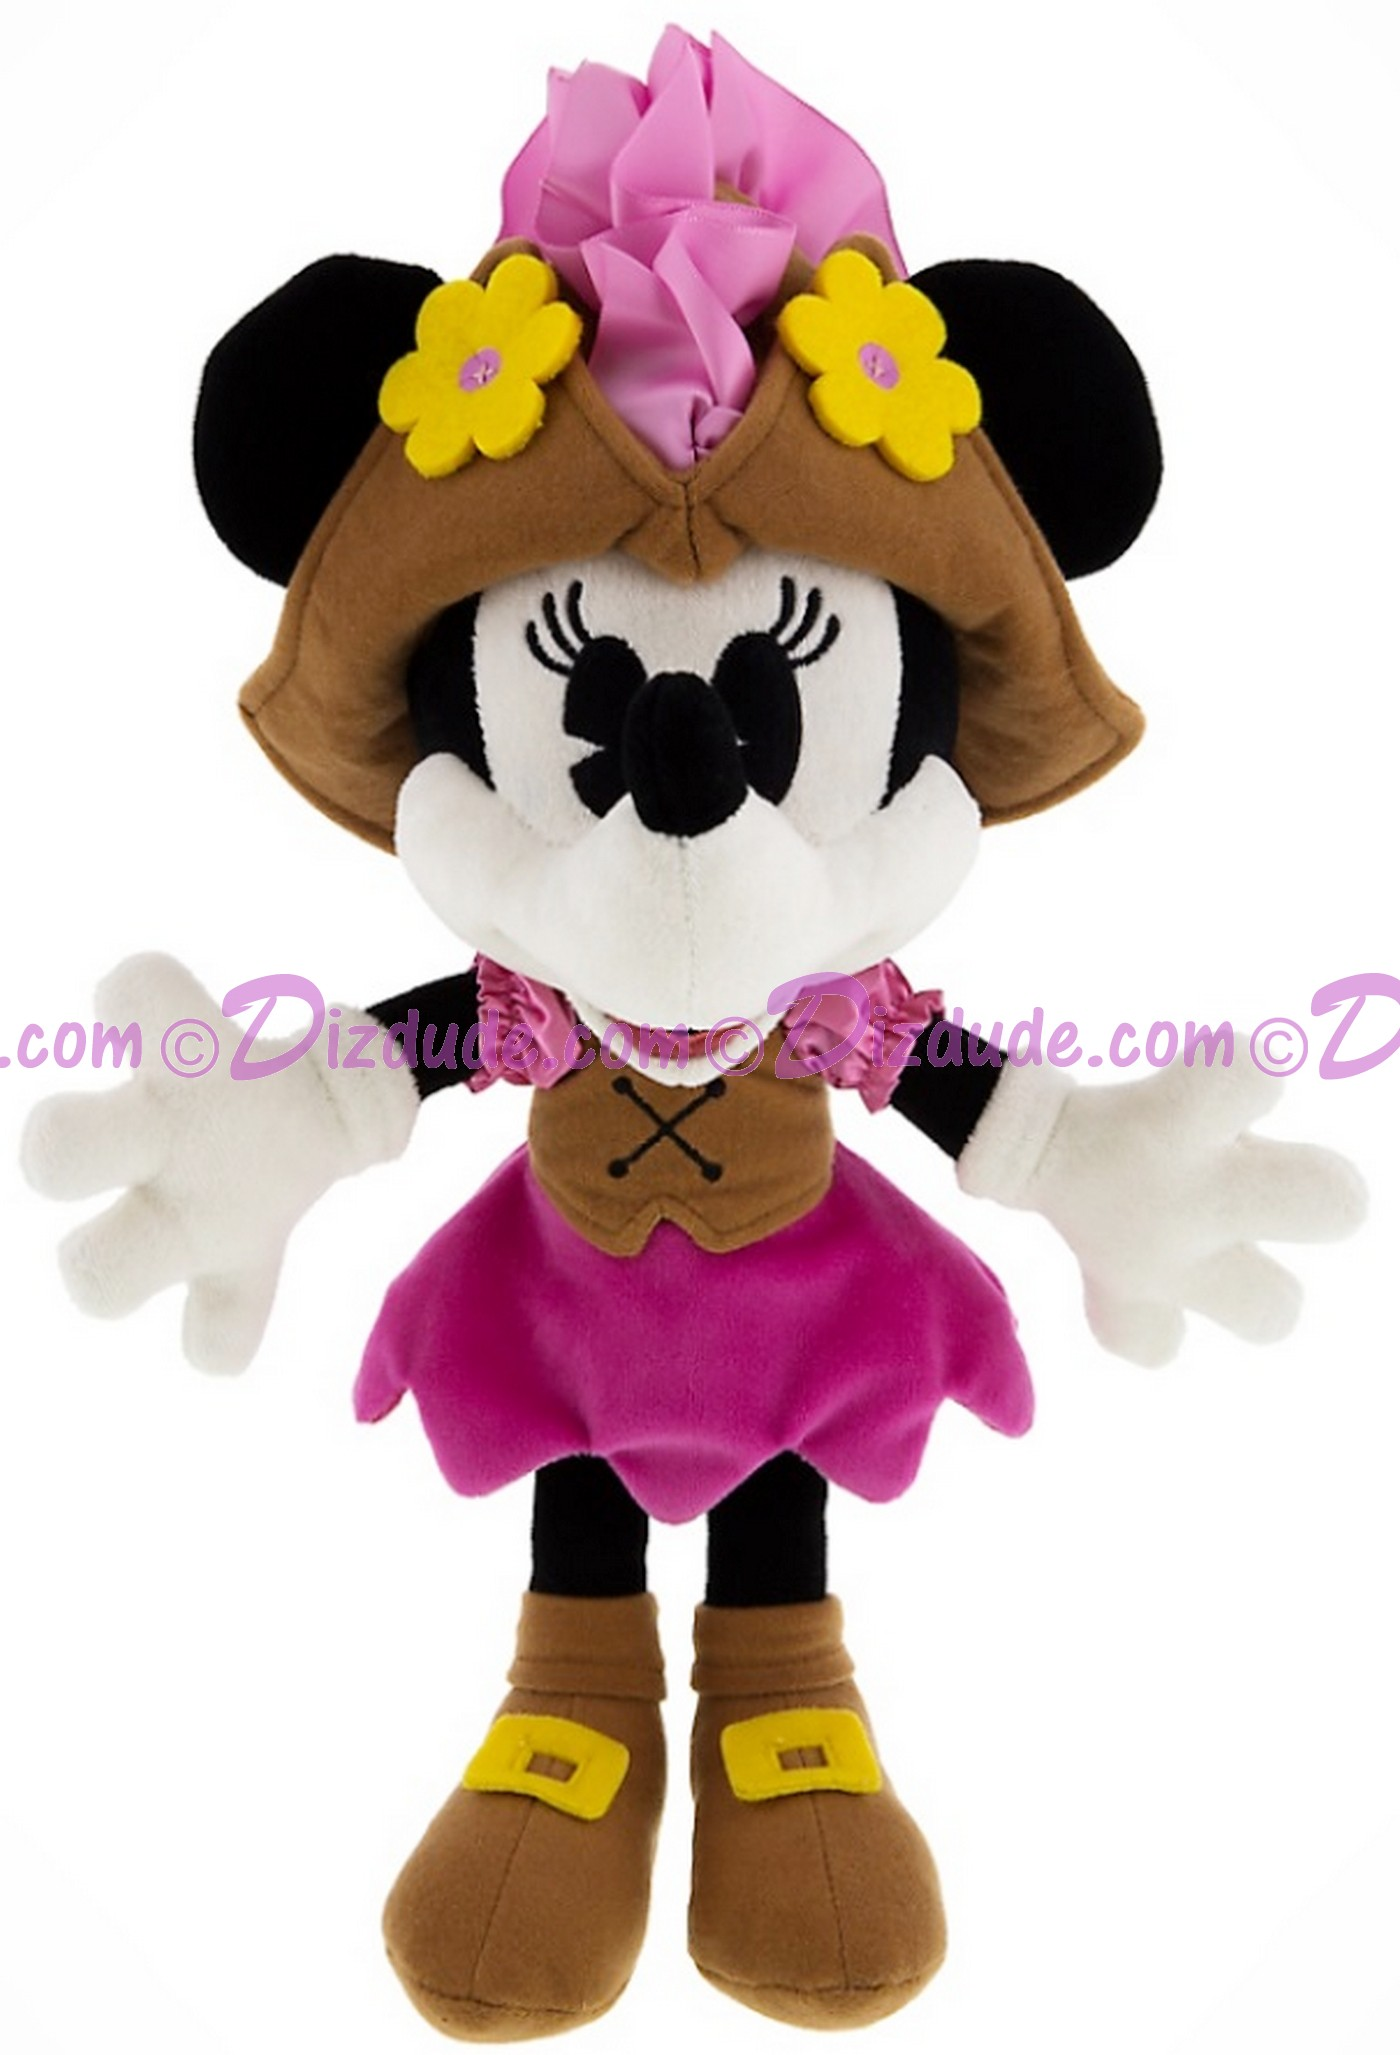 Pirate Minnie Mouse 9 inch (23 cm) Plush ~ Pirates of the Caribbean © Dizdude.com